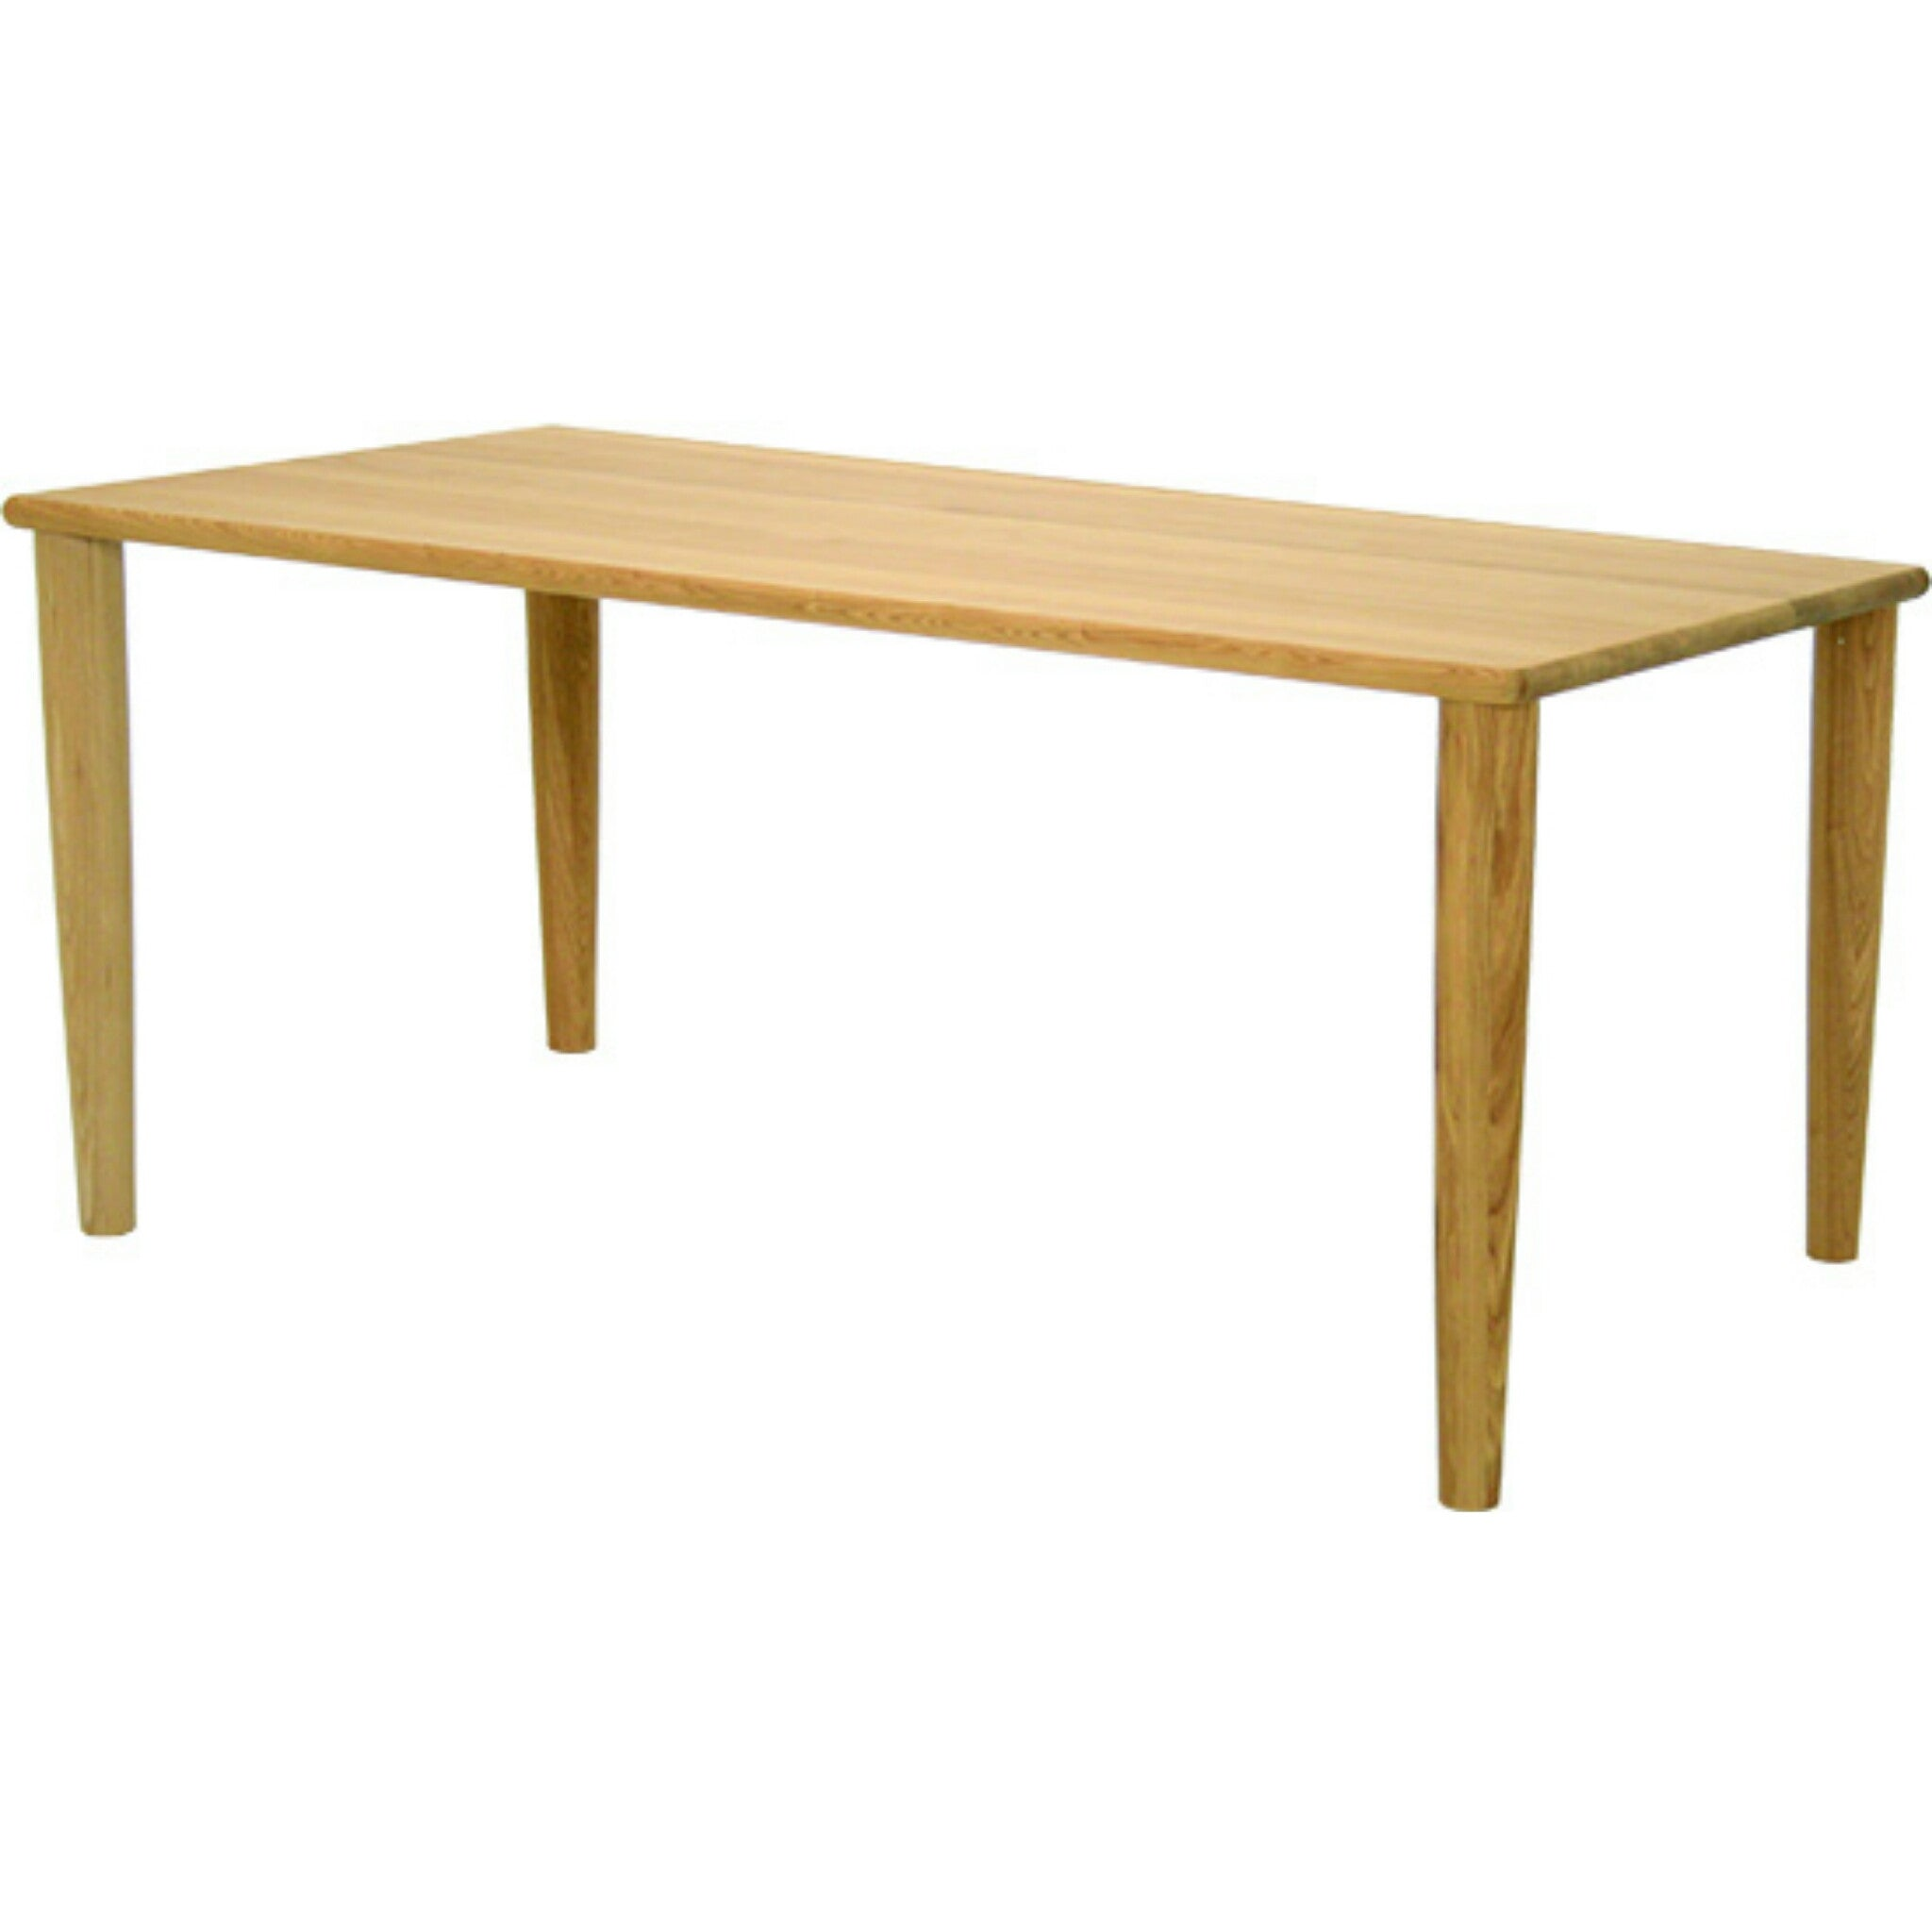 Nagano Interior - LinX Dining Table DT612 - Dining Table